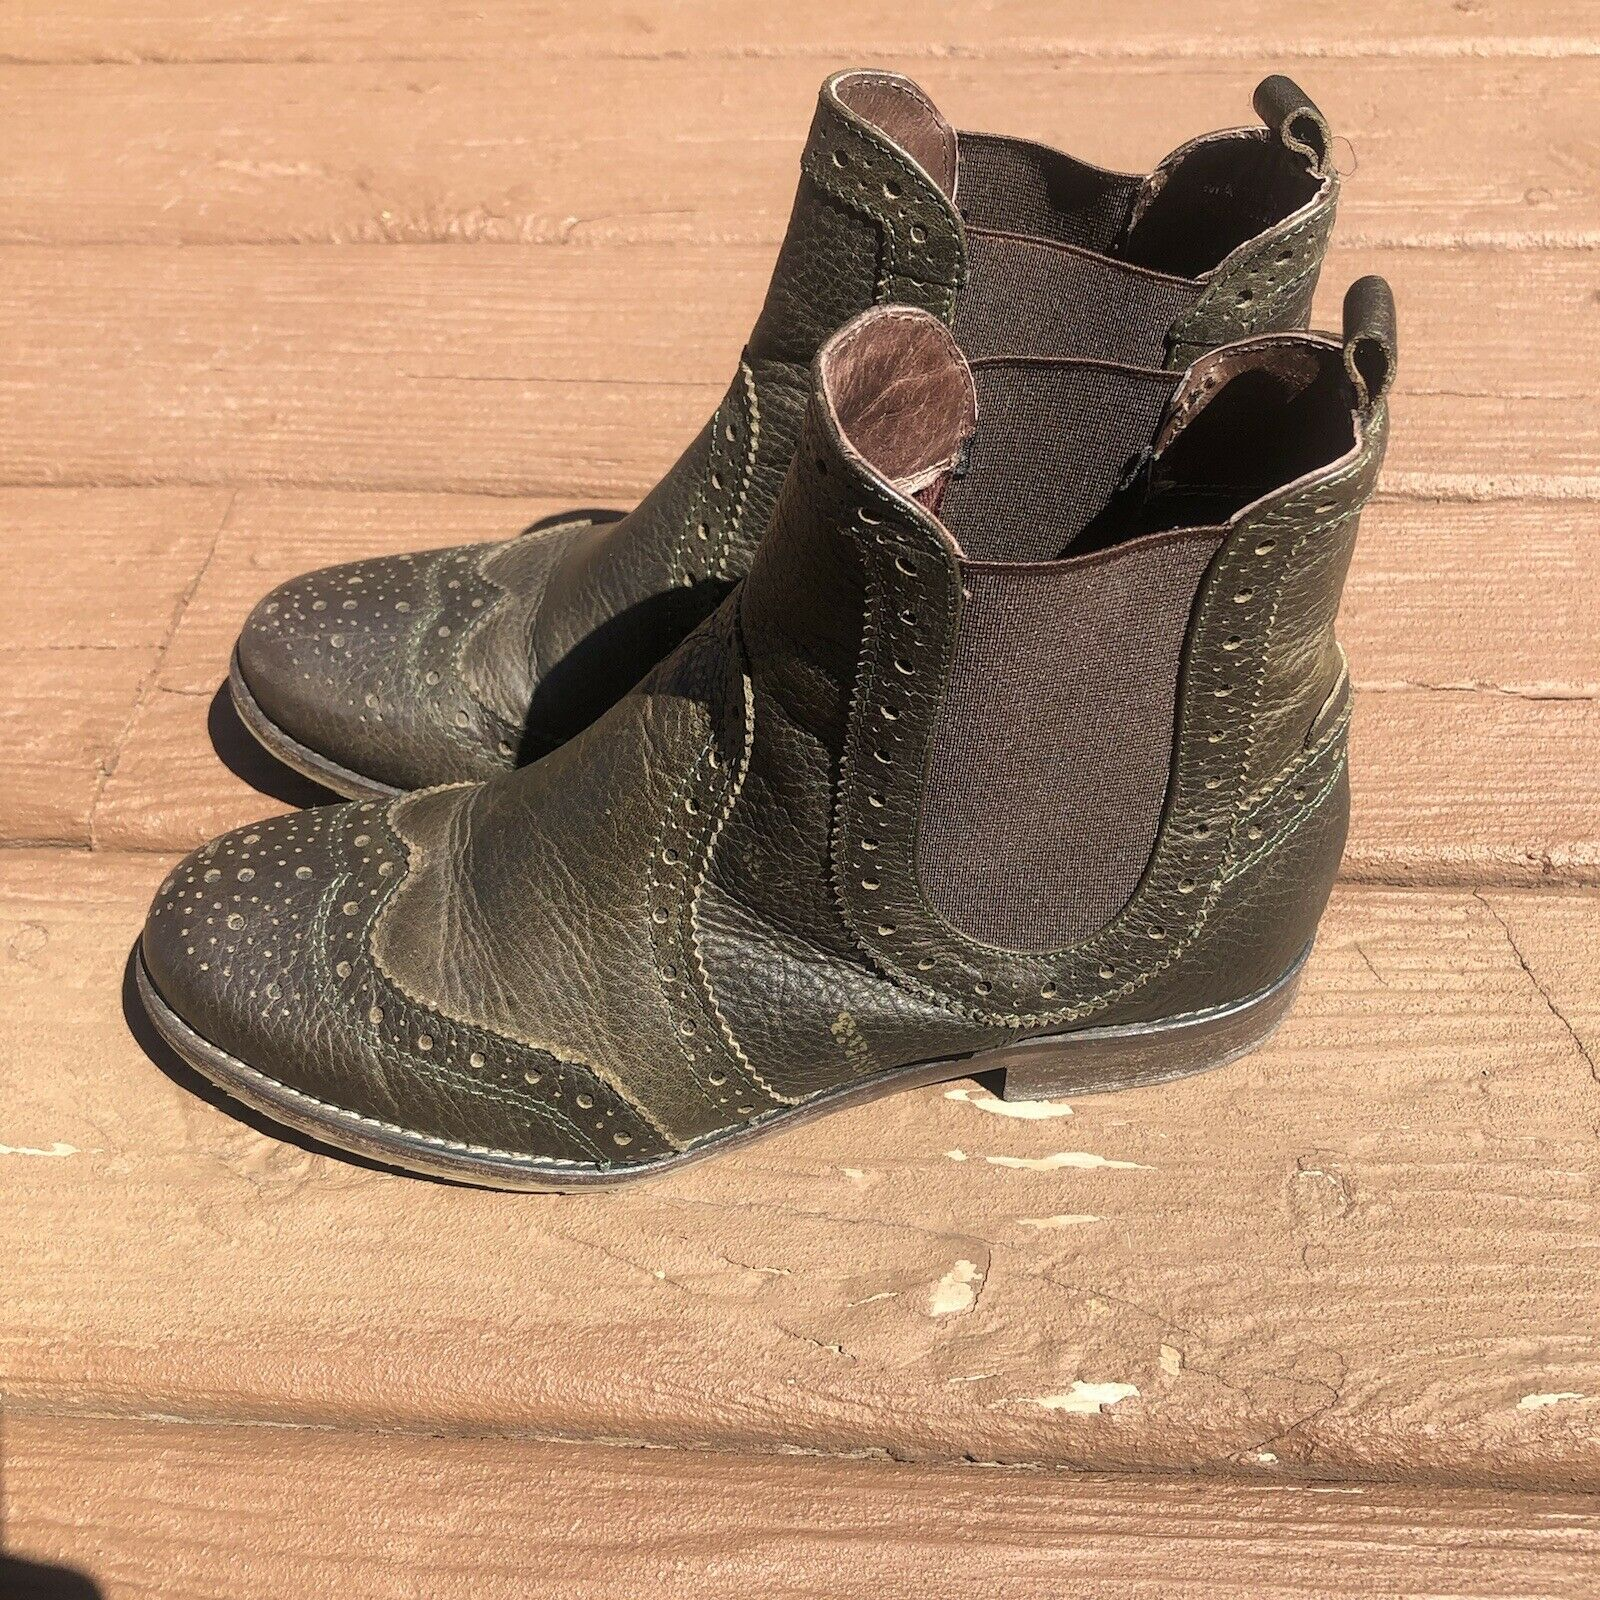 Sundance Cobbler Ankle Boot Leather Olive Green Chelsea Womens 7 / EU 37 Bootie